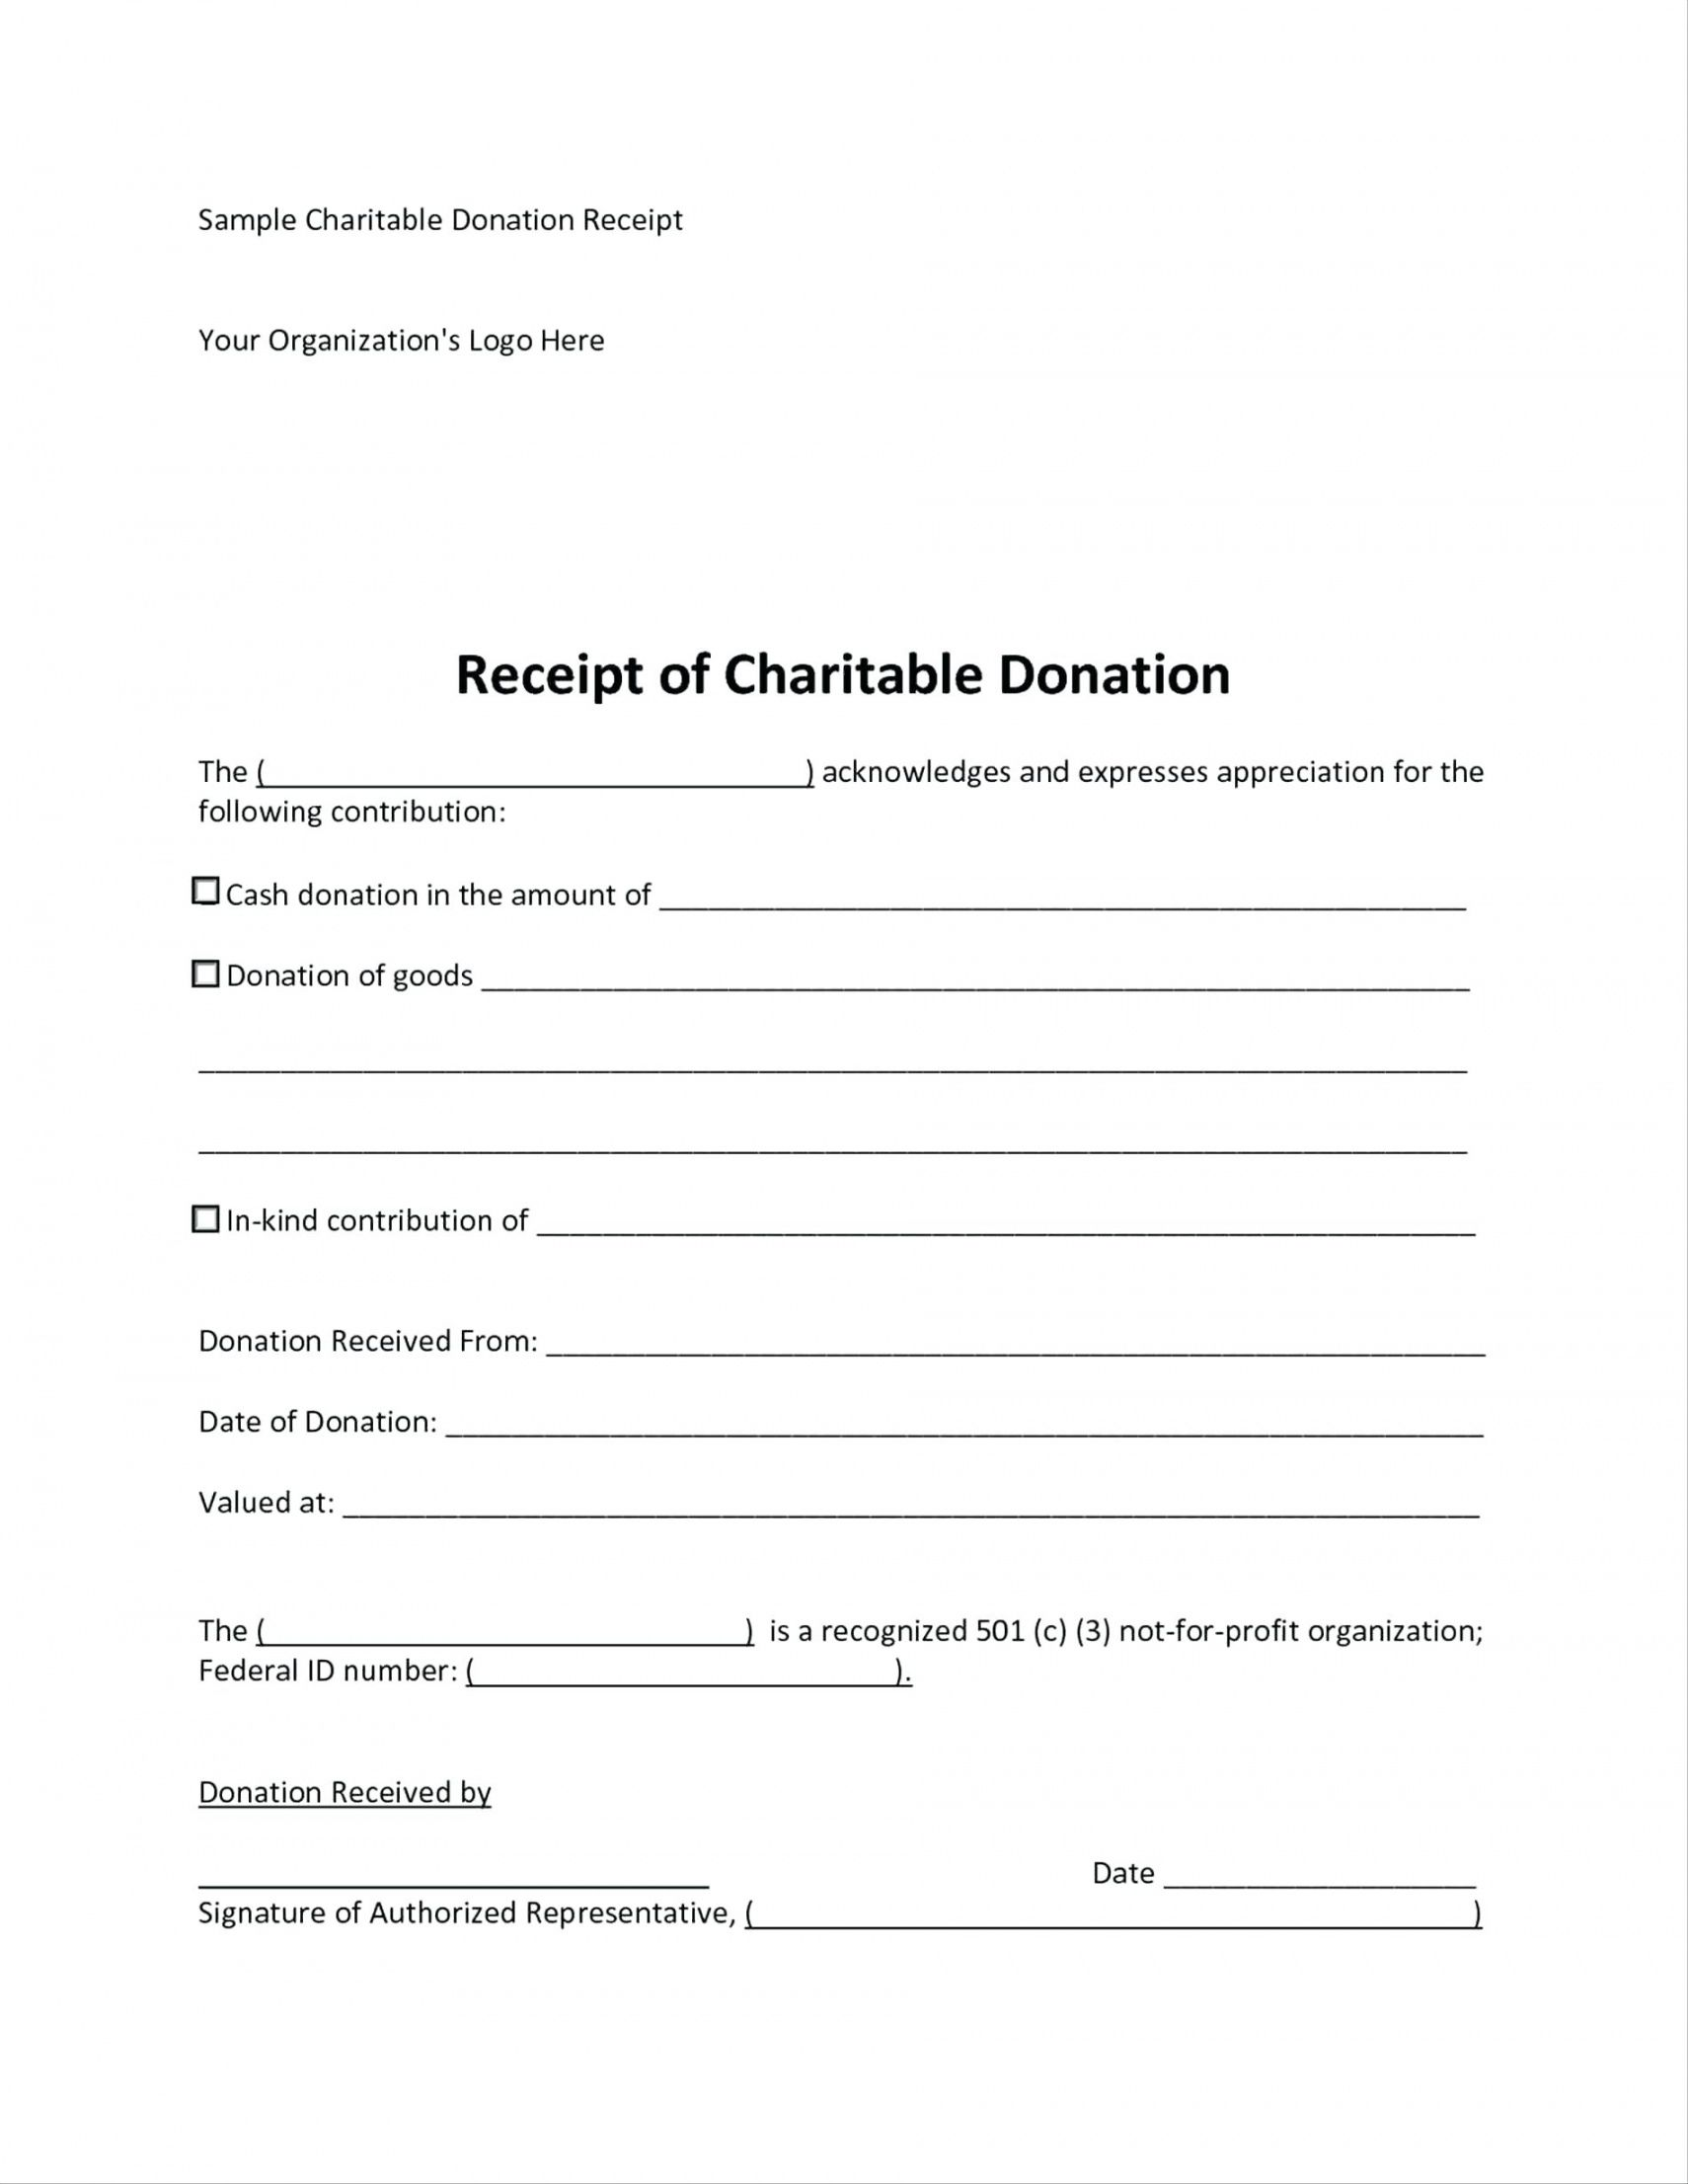 Get Our Example Of Salvation Army Donation Receipt Template Donation Letter Template Donation Letter Donation Form